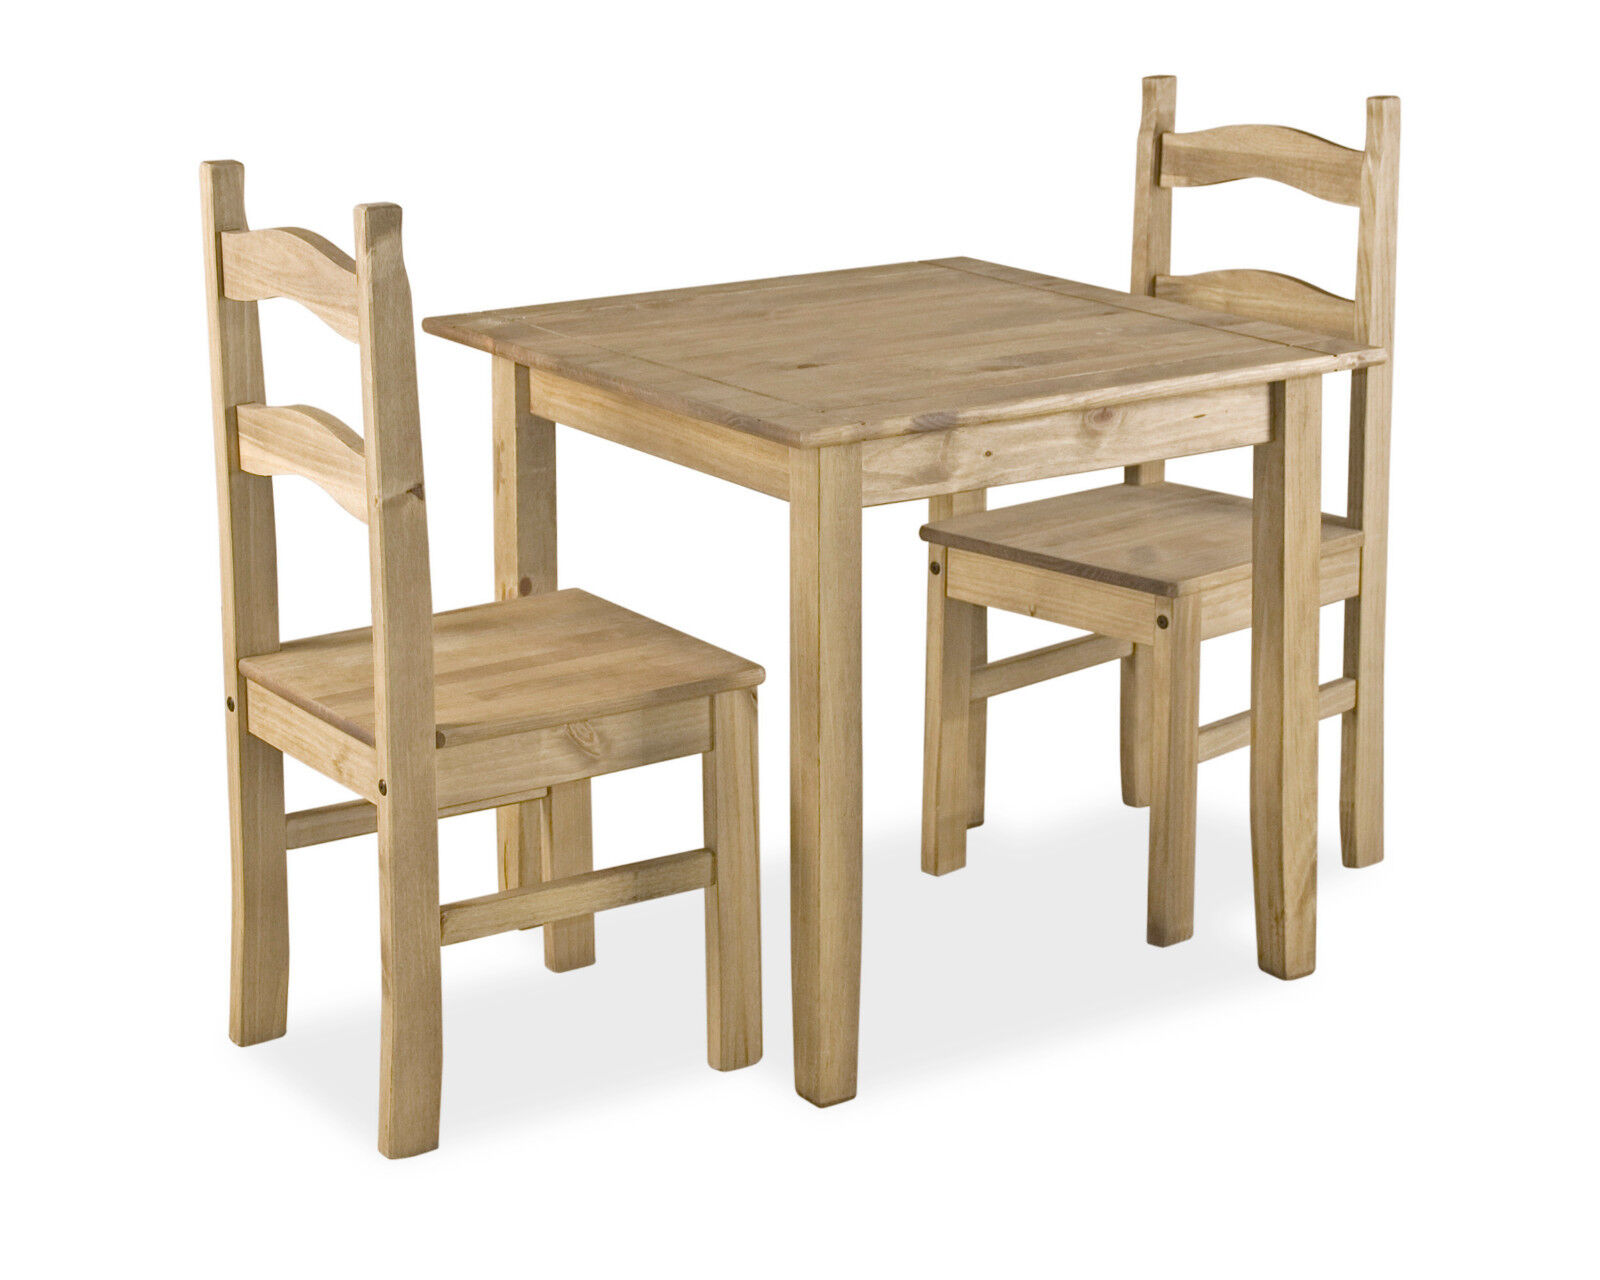 Dining Room Furniture Rustic Details About Dining Kitchen Table Set Small Square Two Chairs Rustic Light Waxed Solid Pine